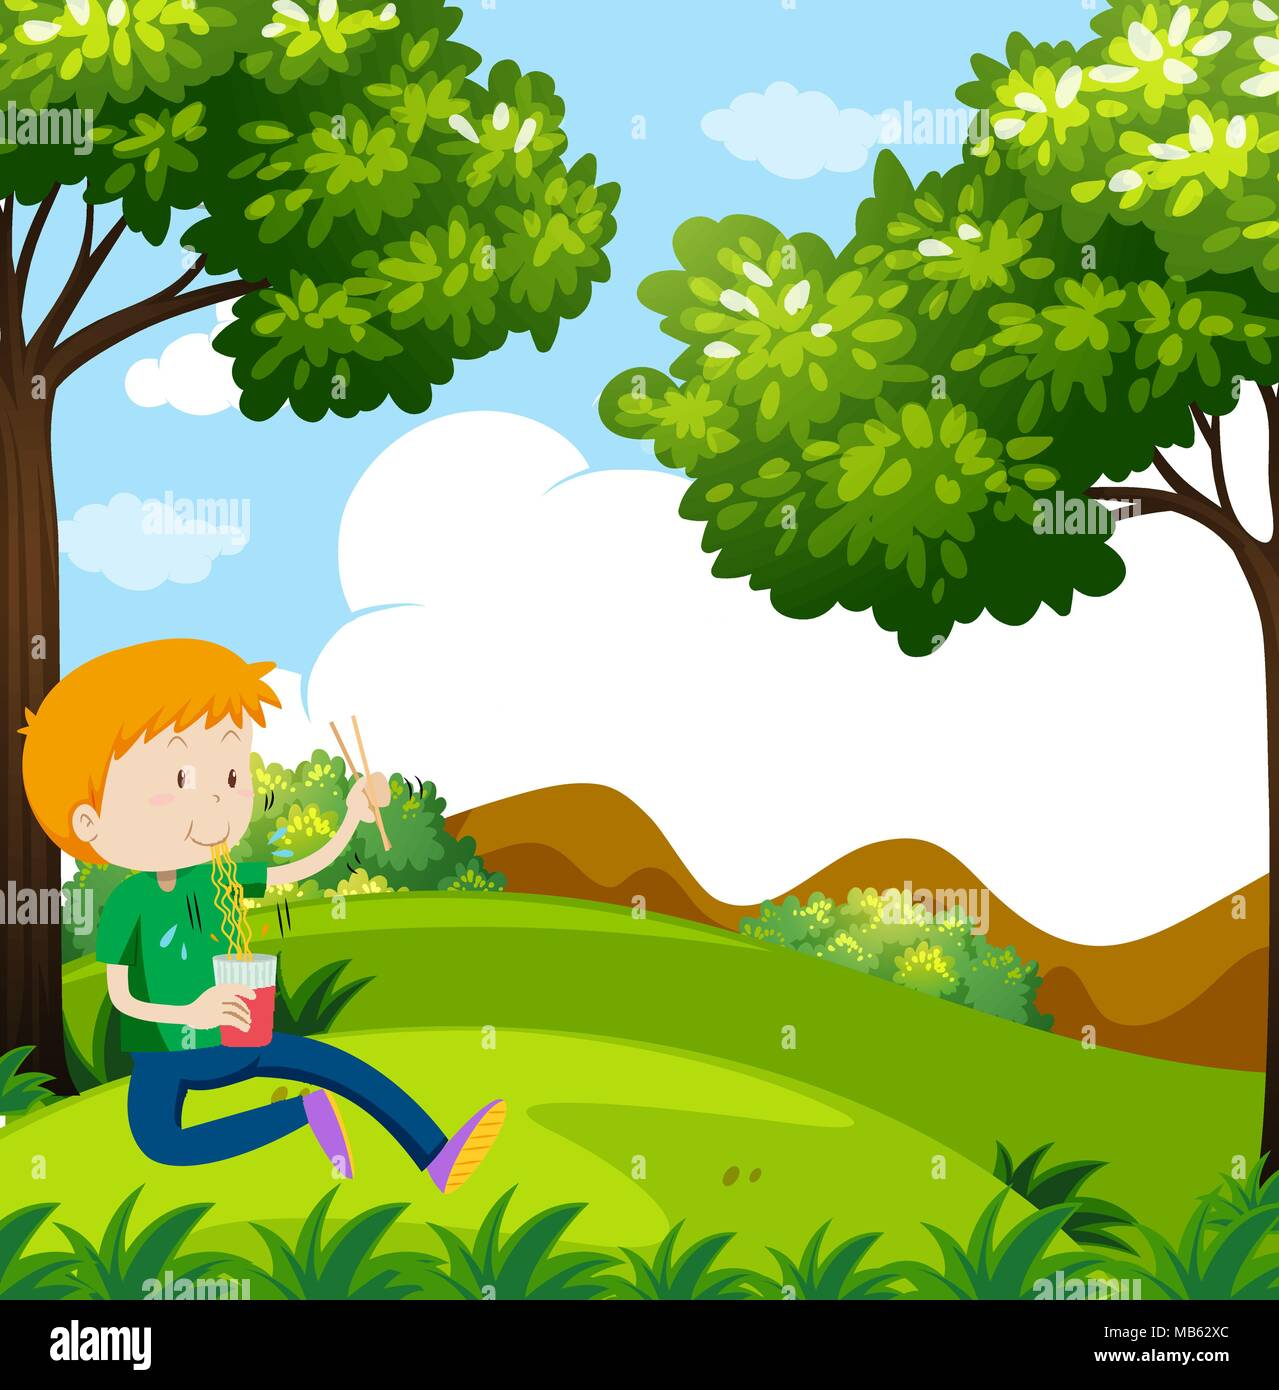 Boy eating noodles in the park illustration - Stock Vector